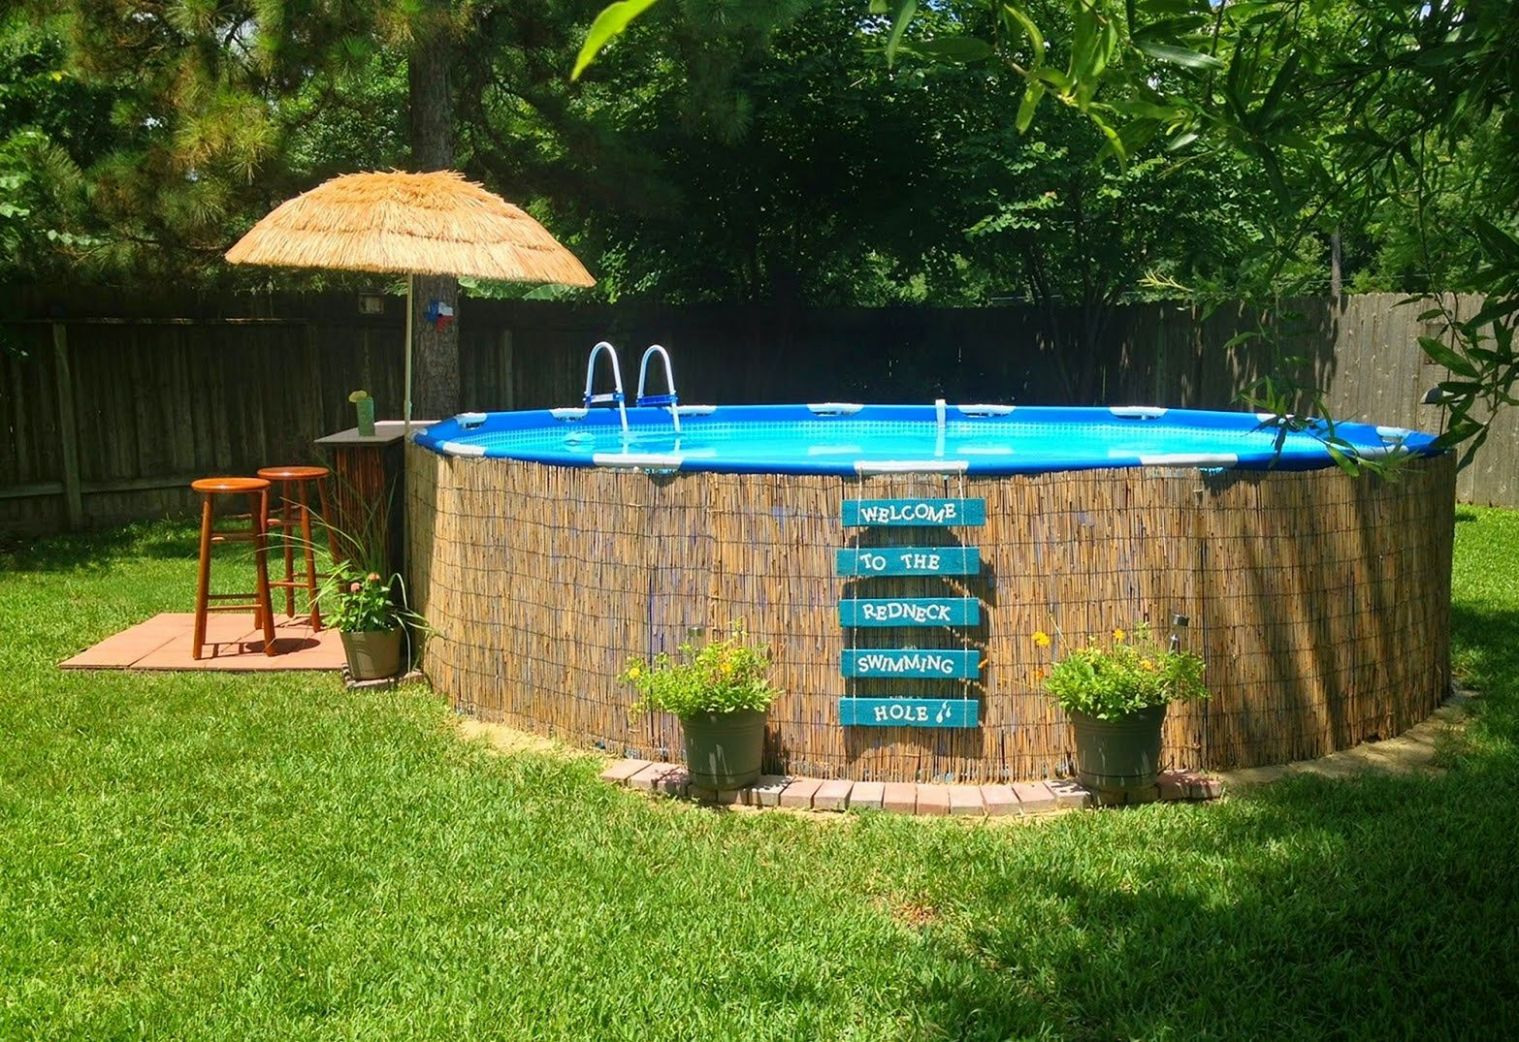 Top 9 Diy Above Ground Pool Ideas On A Budget | Oberirdische ...